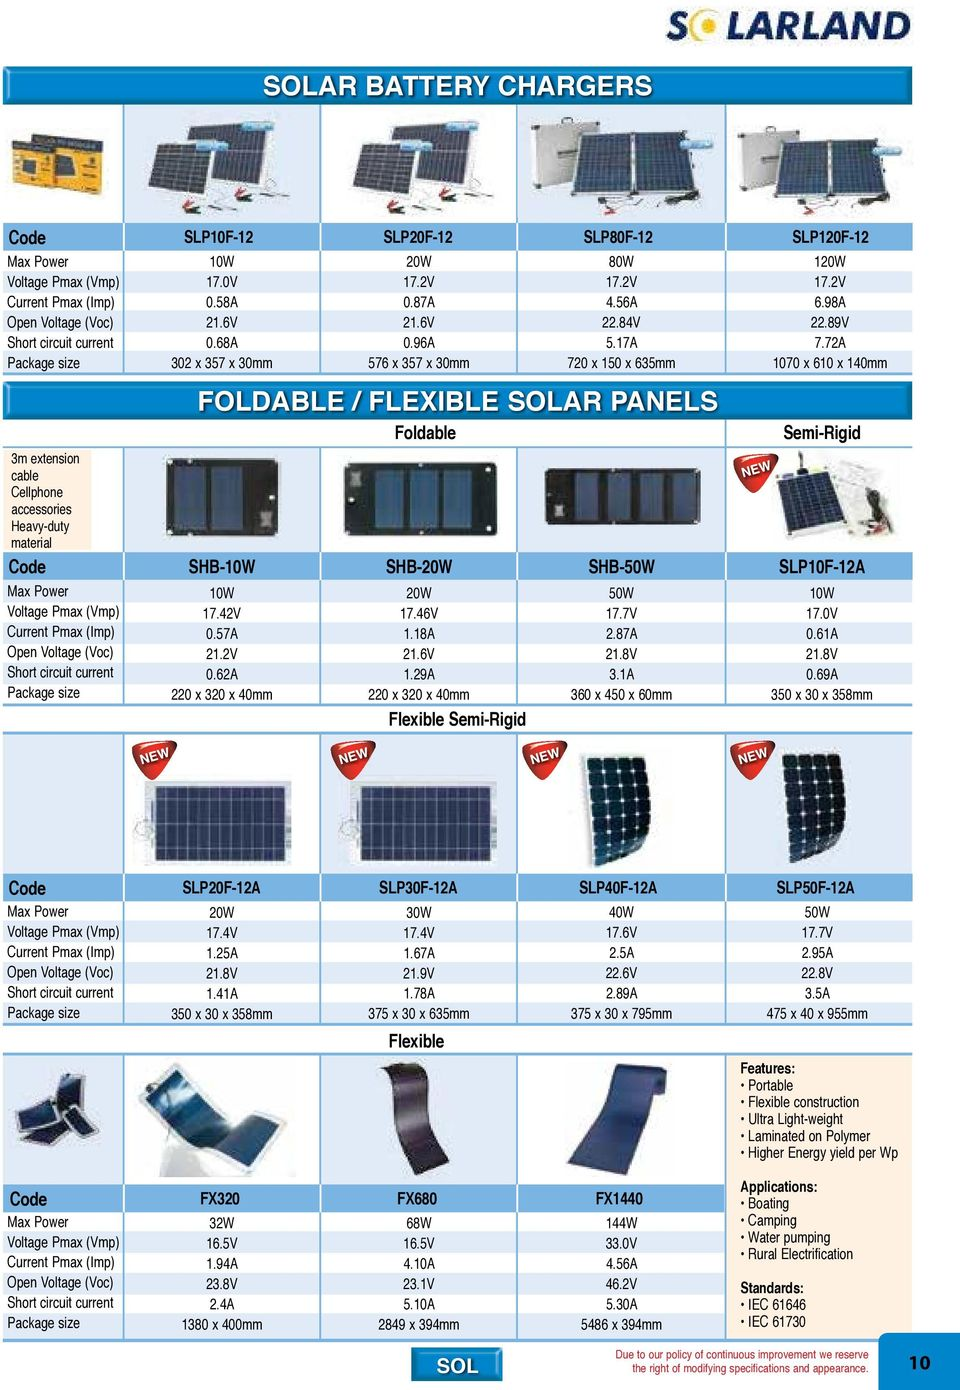 Distributed Solar Power Systems Short Form Catalogue Pdf Panel Cell 6v 1w Polycrystalline Portable 110x60mm 17a 720 X 150 635mm Foldable Flexible Ar Panels Slp120f12 120w 172v 698